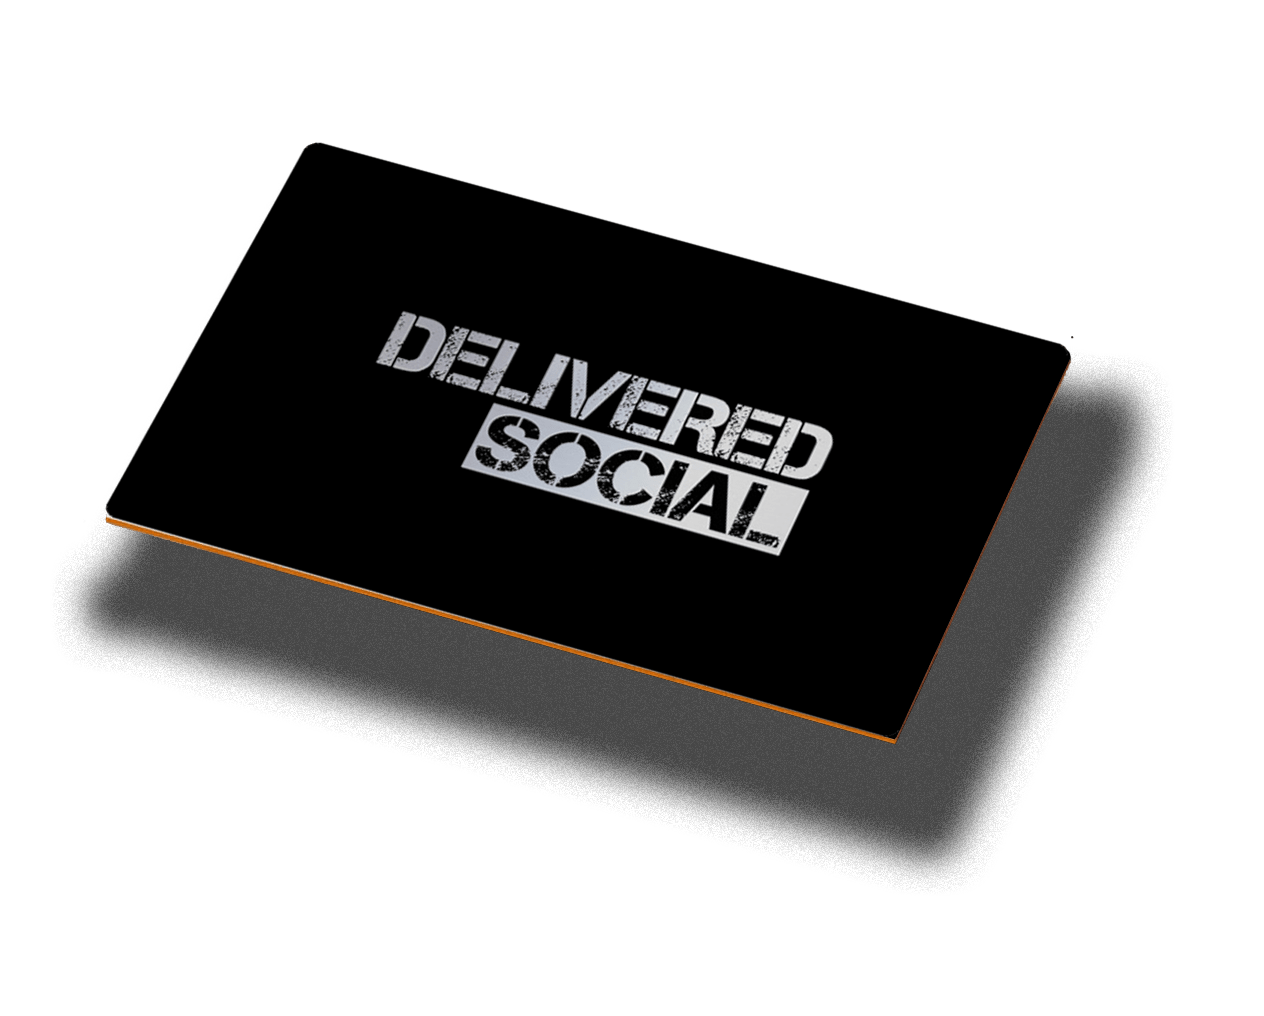 Delivered Social Black